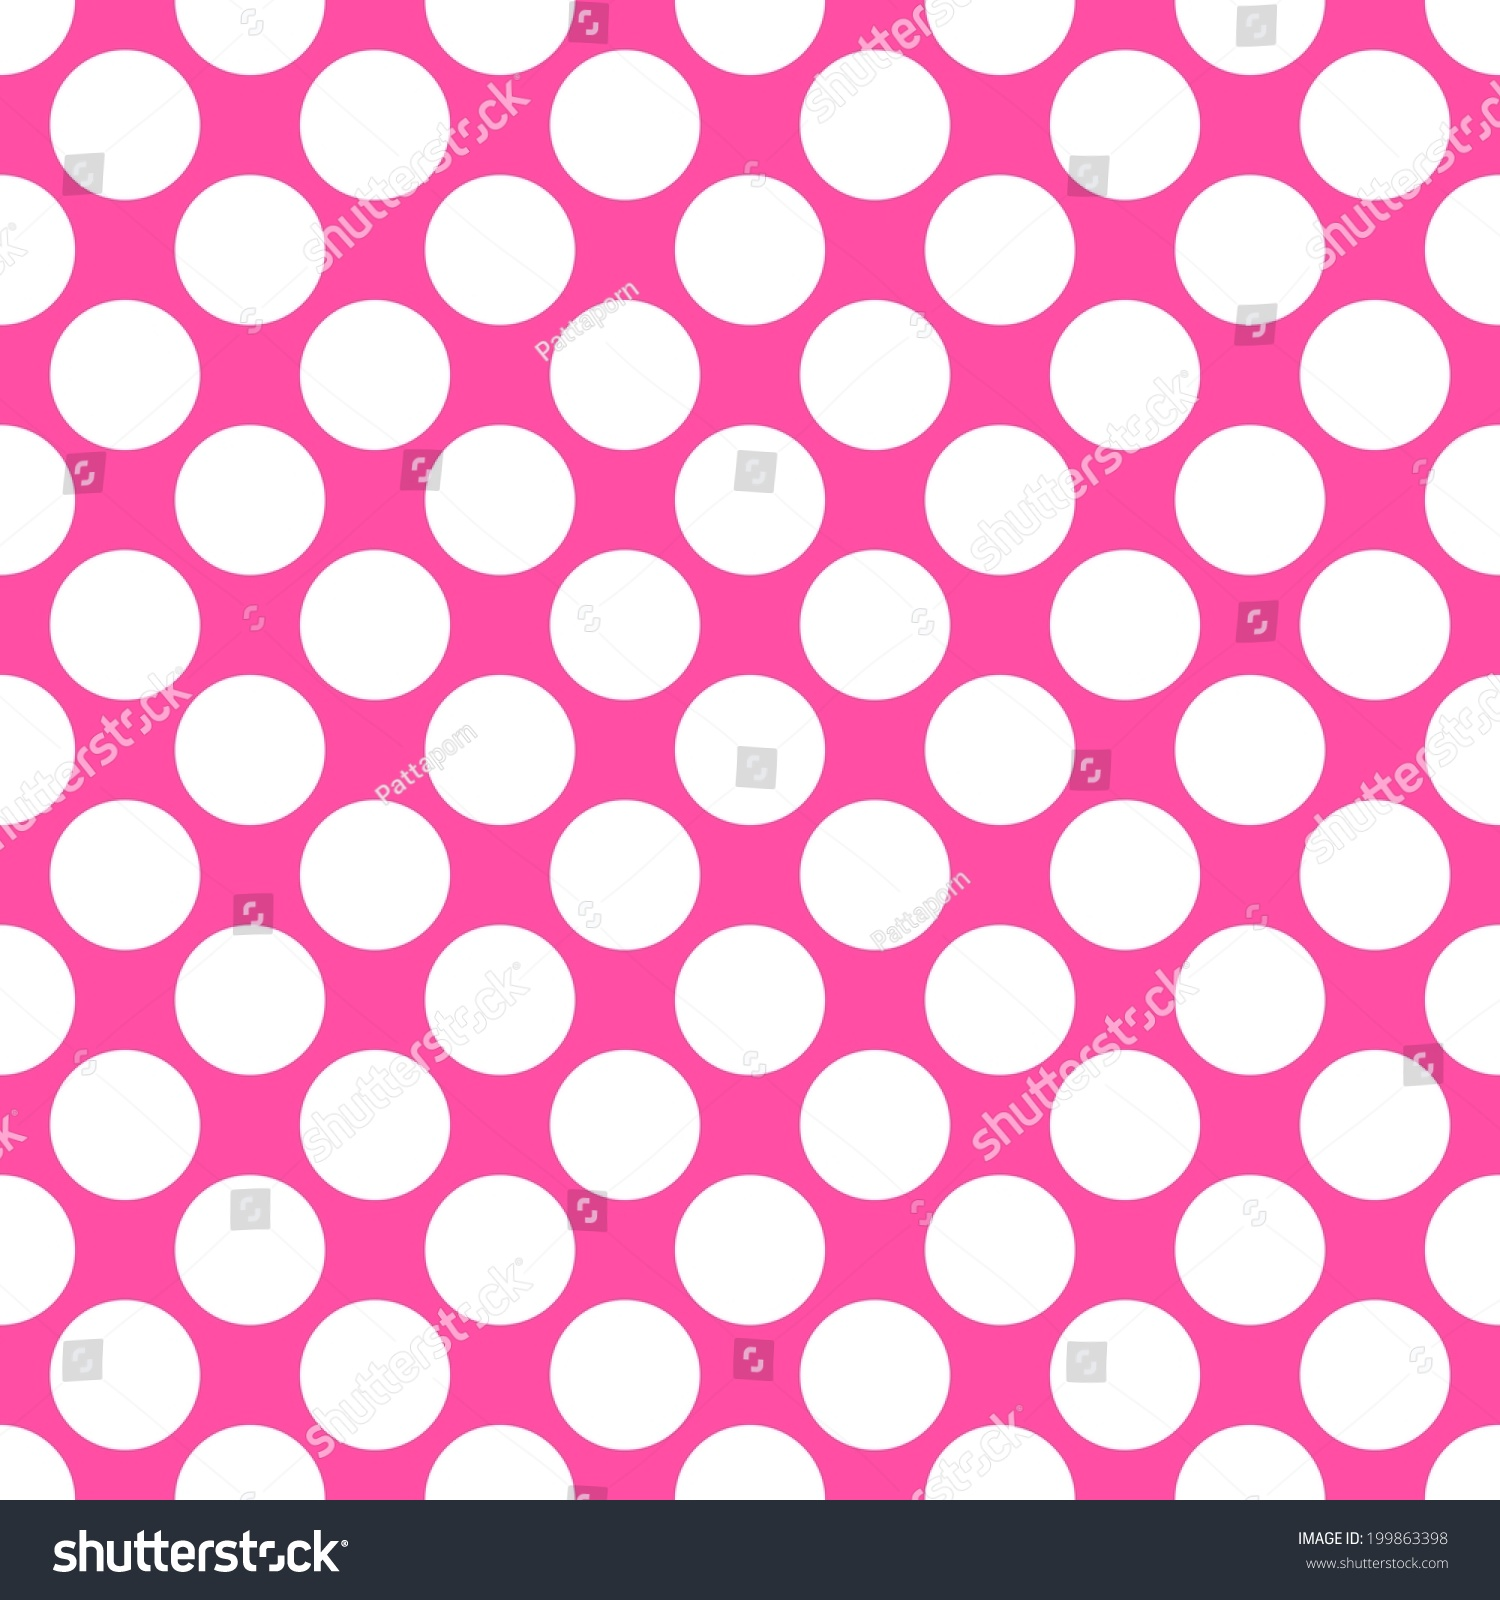 Digital paper scrapbook pink white large stock for Red and white polka dot pattern